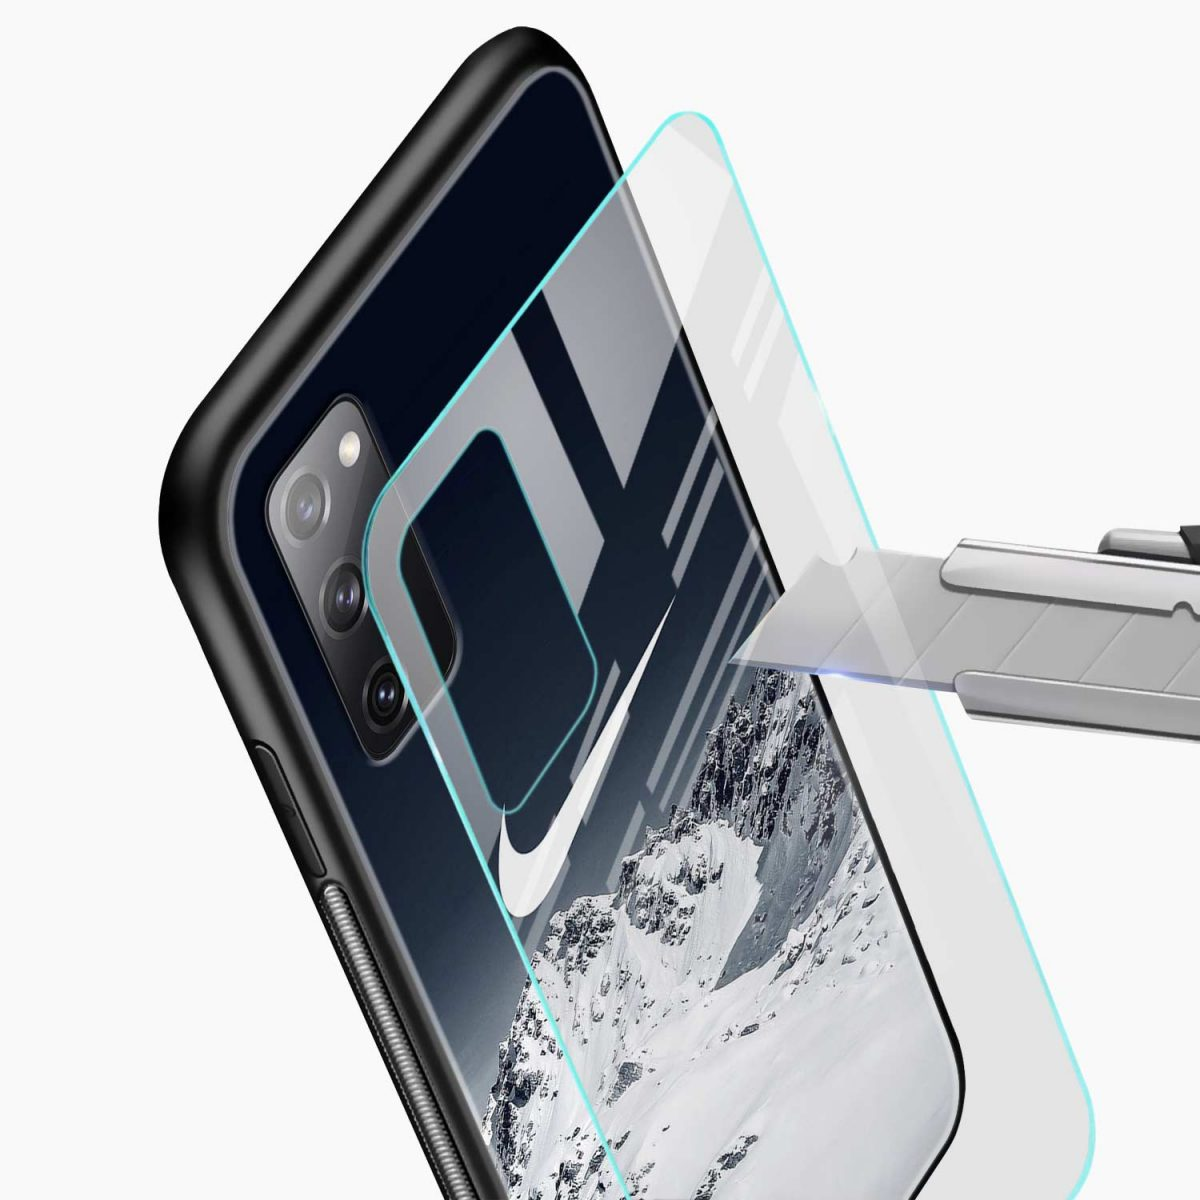 nike mountains glass view samsung galaxy s20 fe back cover